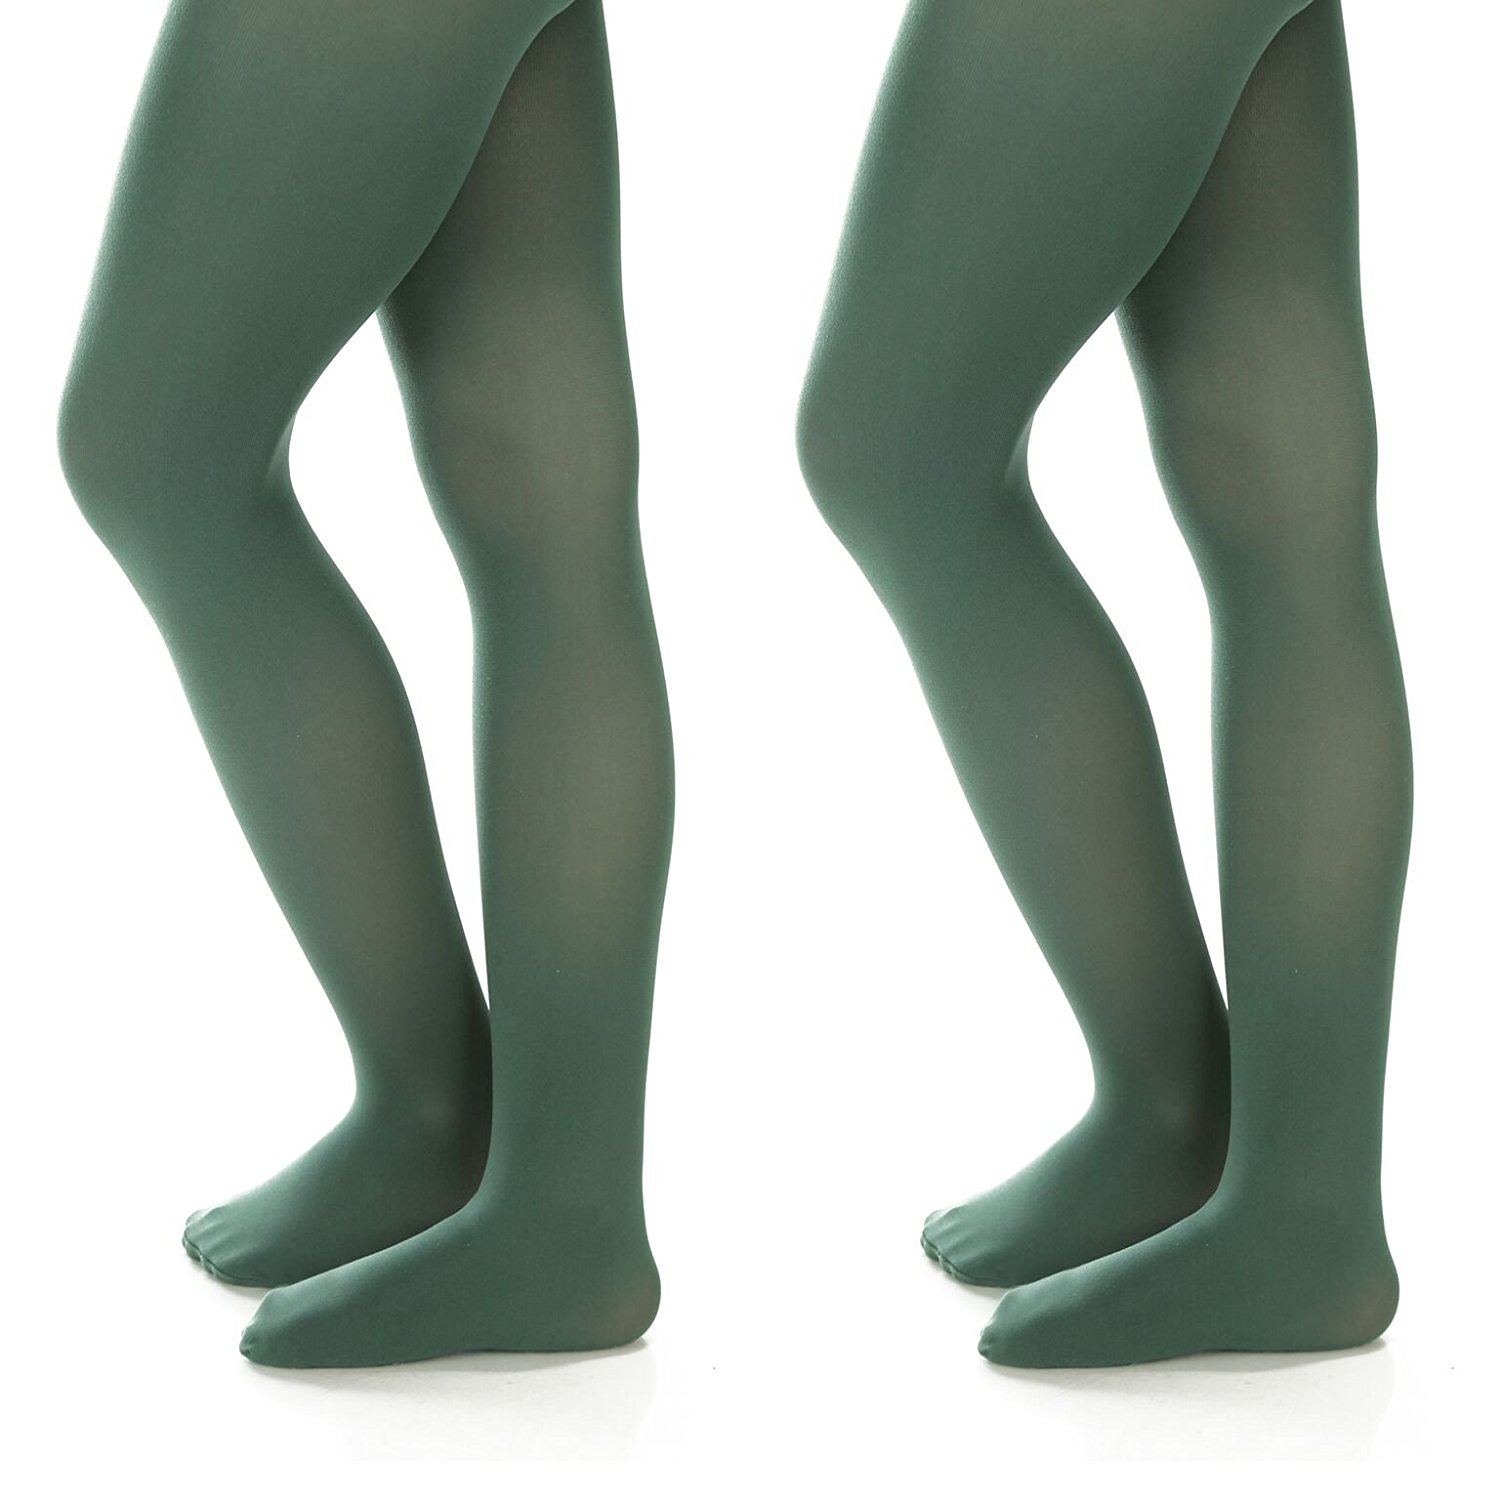 d525df78bd3eb Get Quotations · Silky Toes Girls' Microfiber Opaque Footed Tights (2 Pairs)